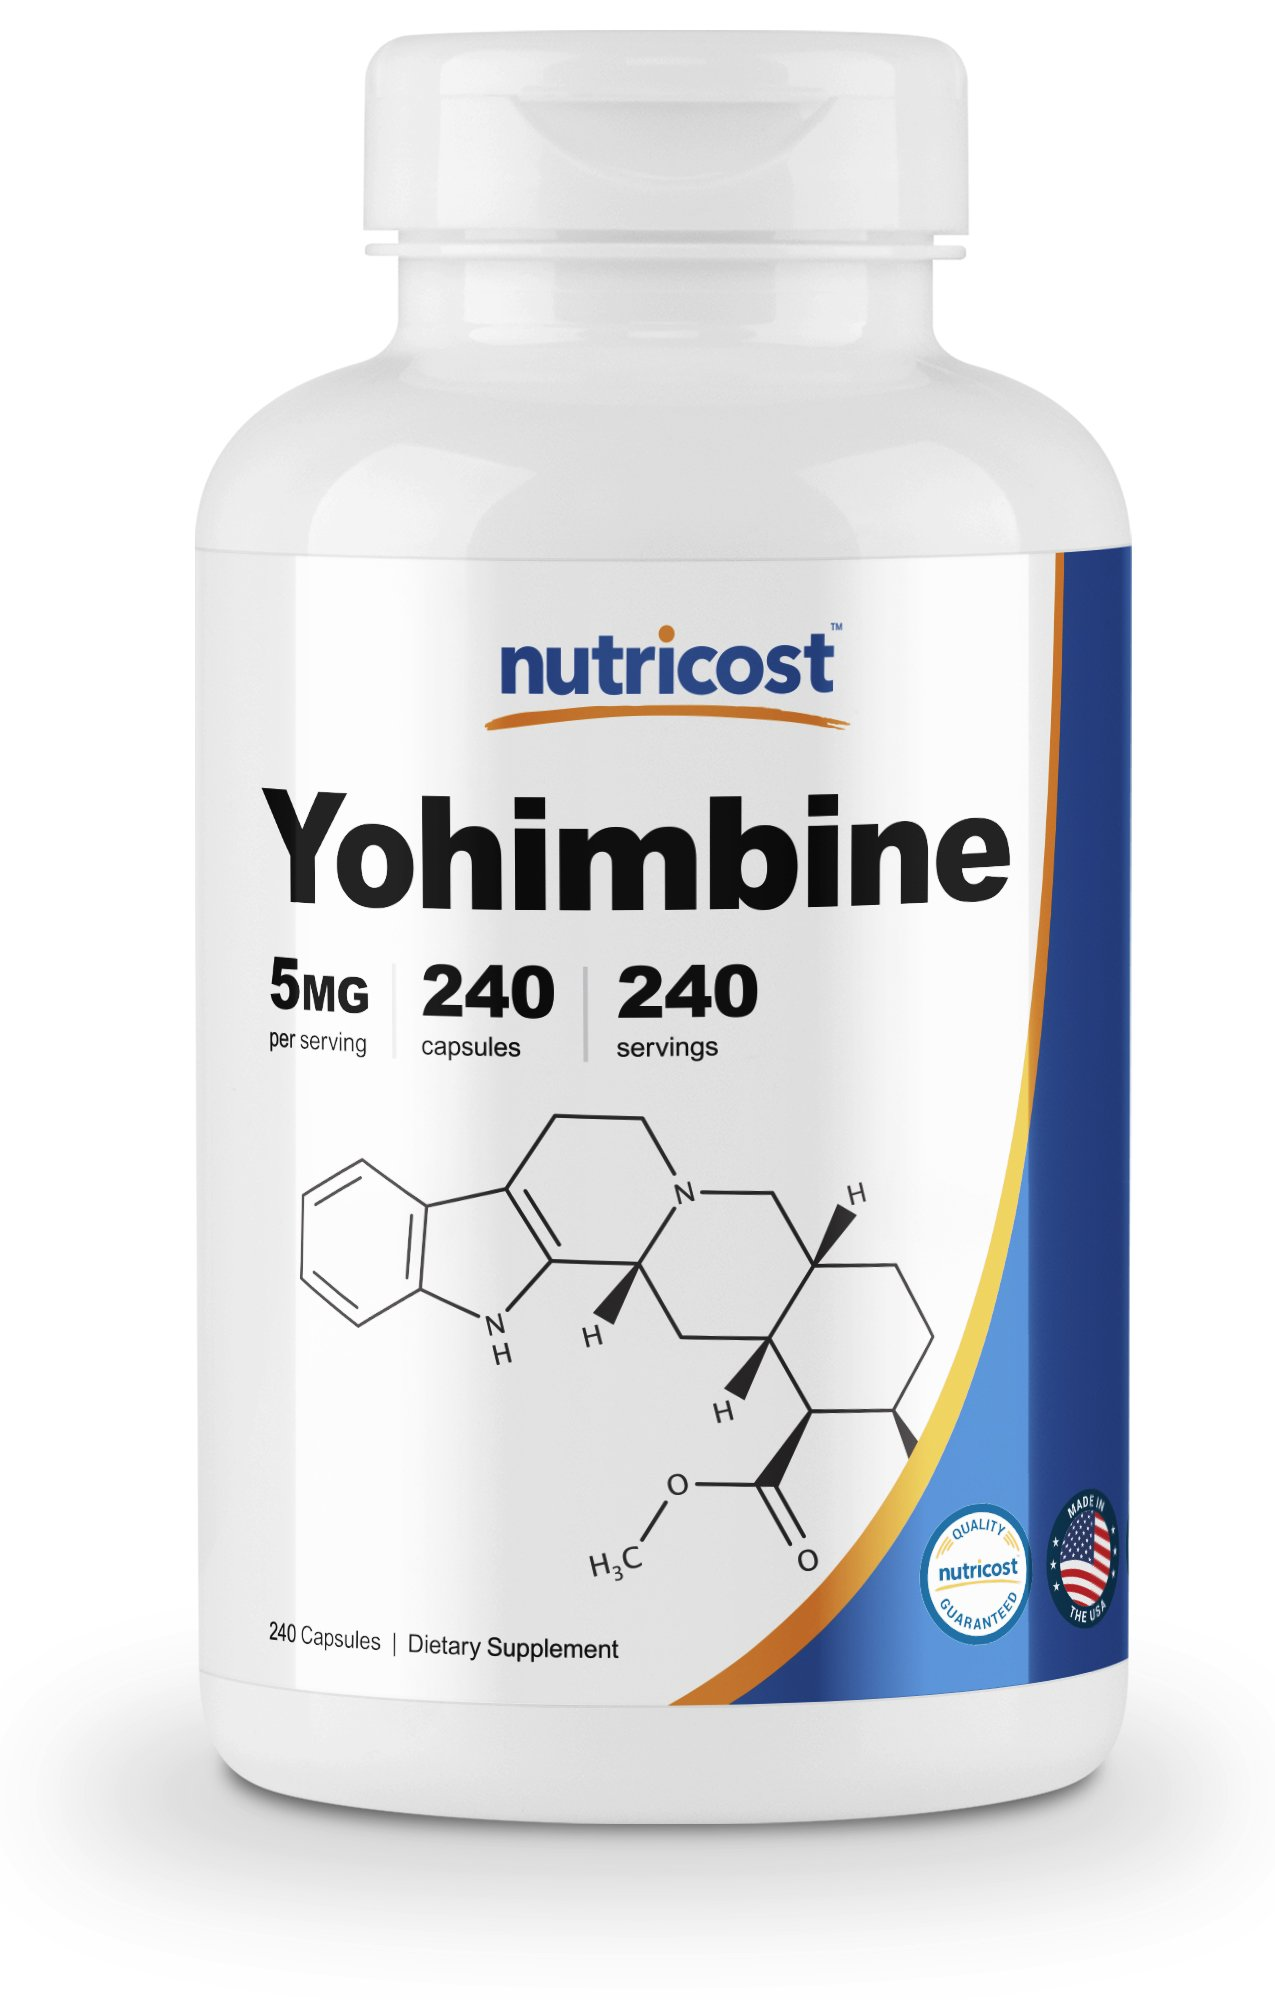 Nutricost Yohimbine HCl 5mg, 240 Capsules Extra Strength by Nutricost (Image #1)